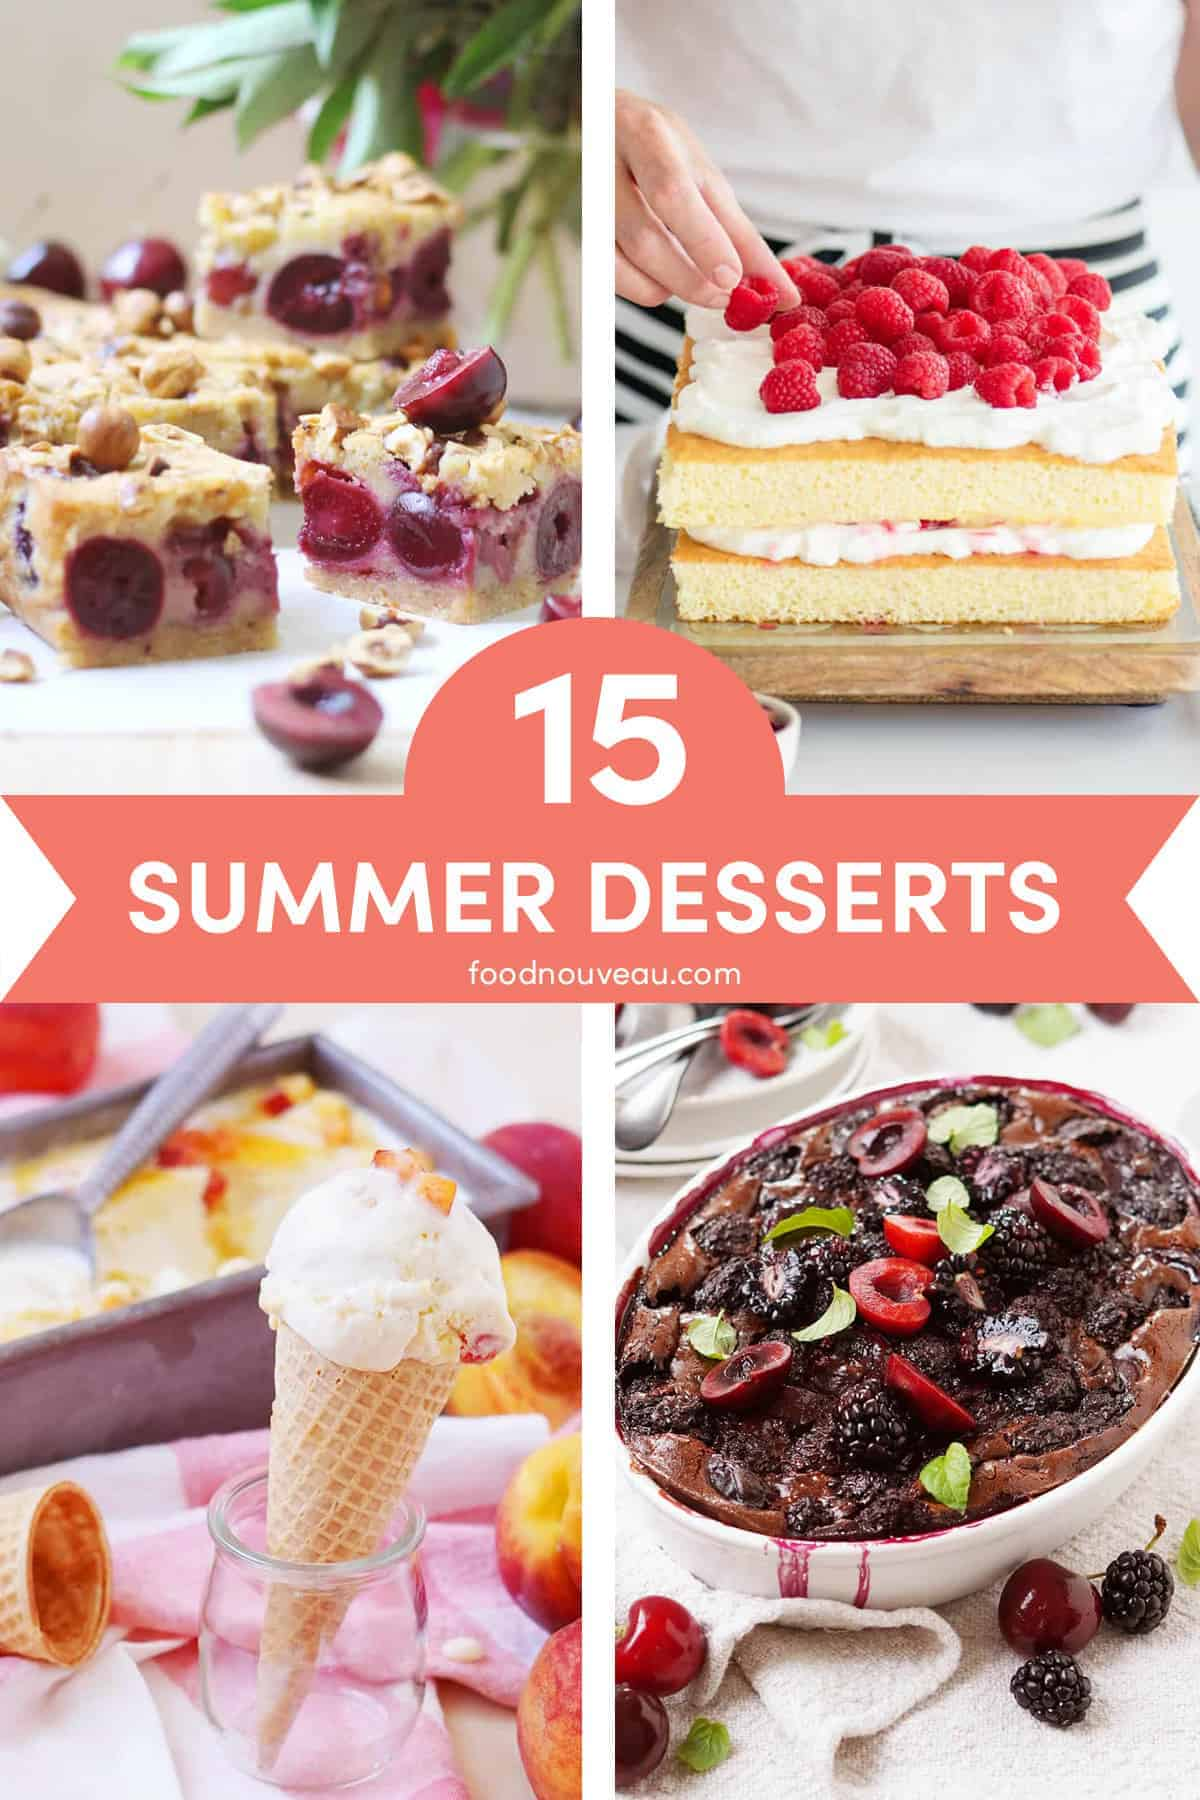 Summer Desserts: 15 Sweet and Colorful Summer Treats // FoodNouveau.com